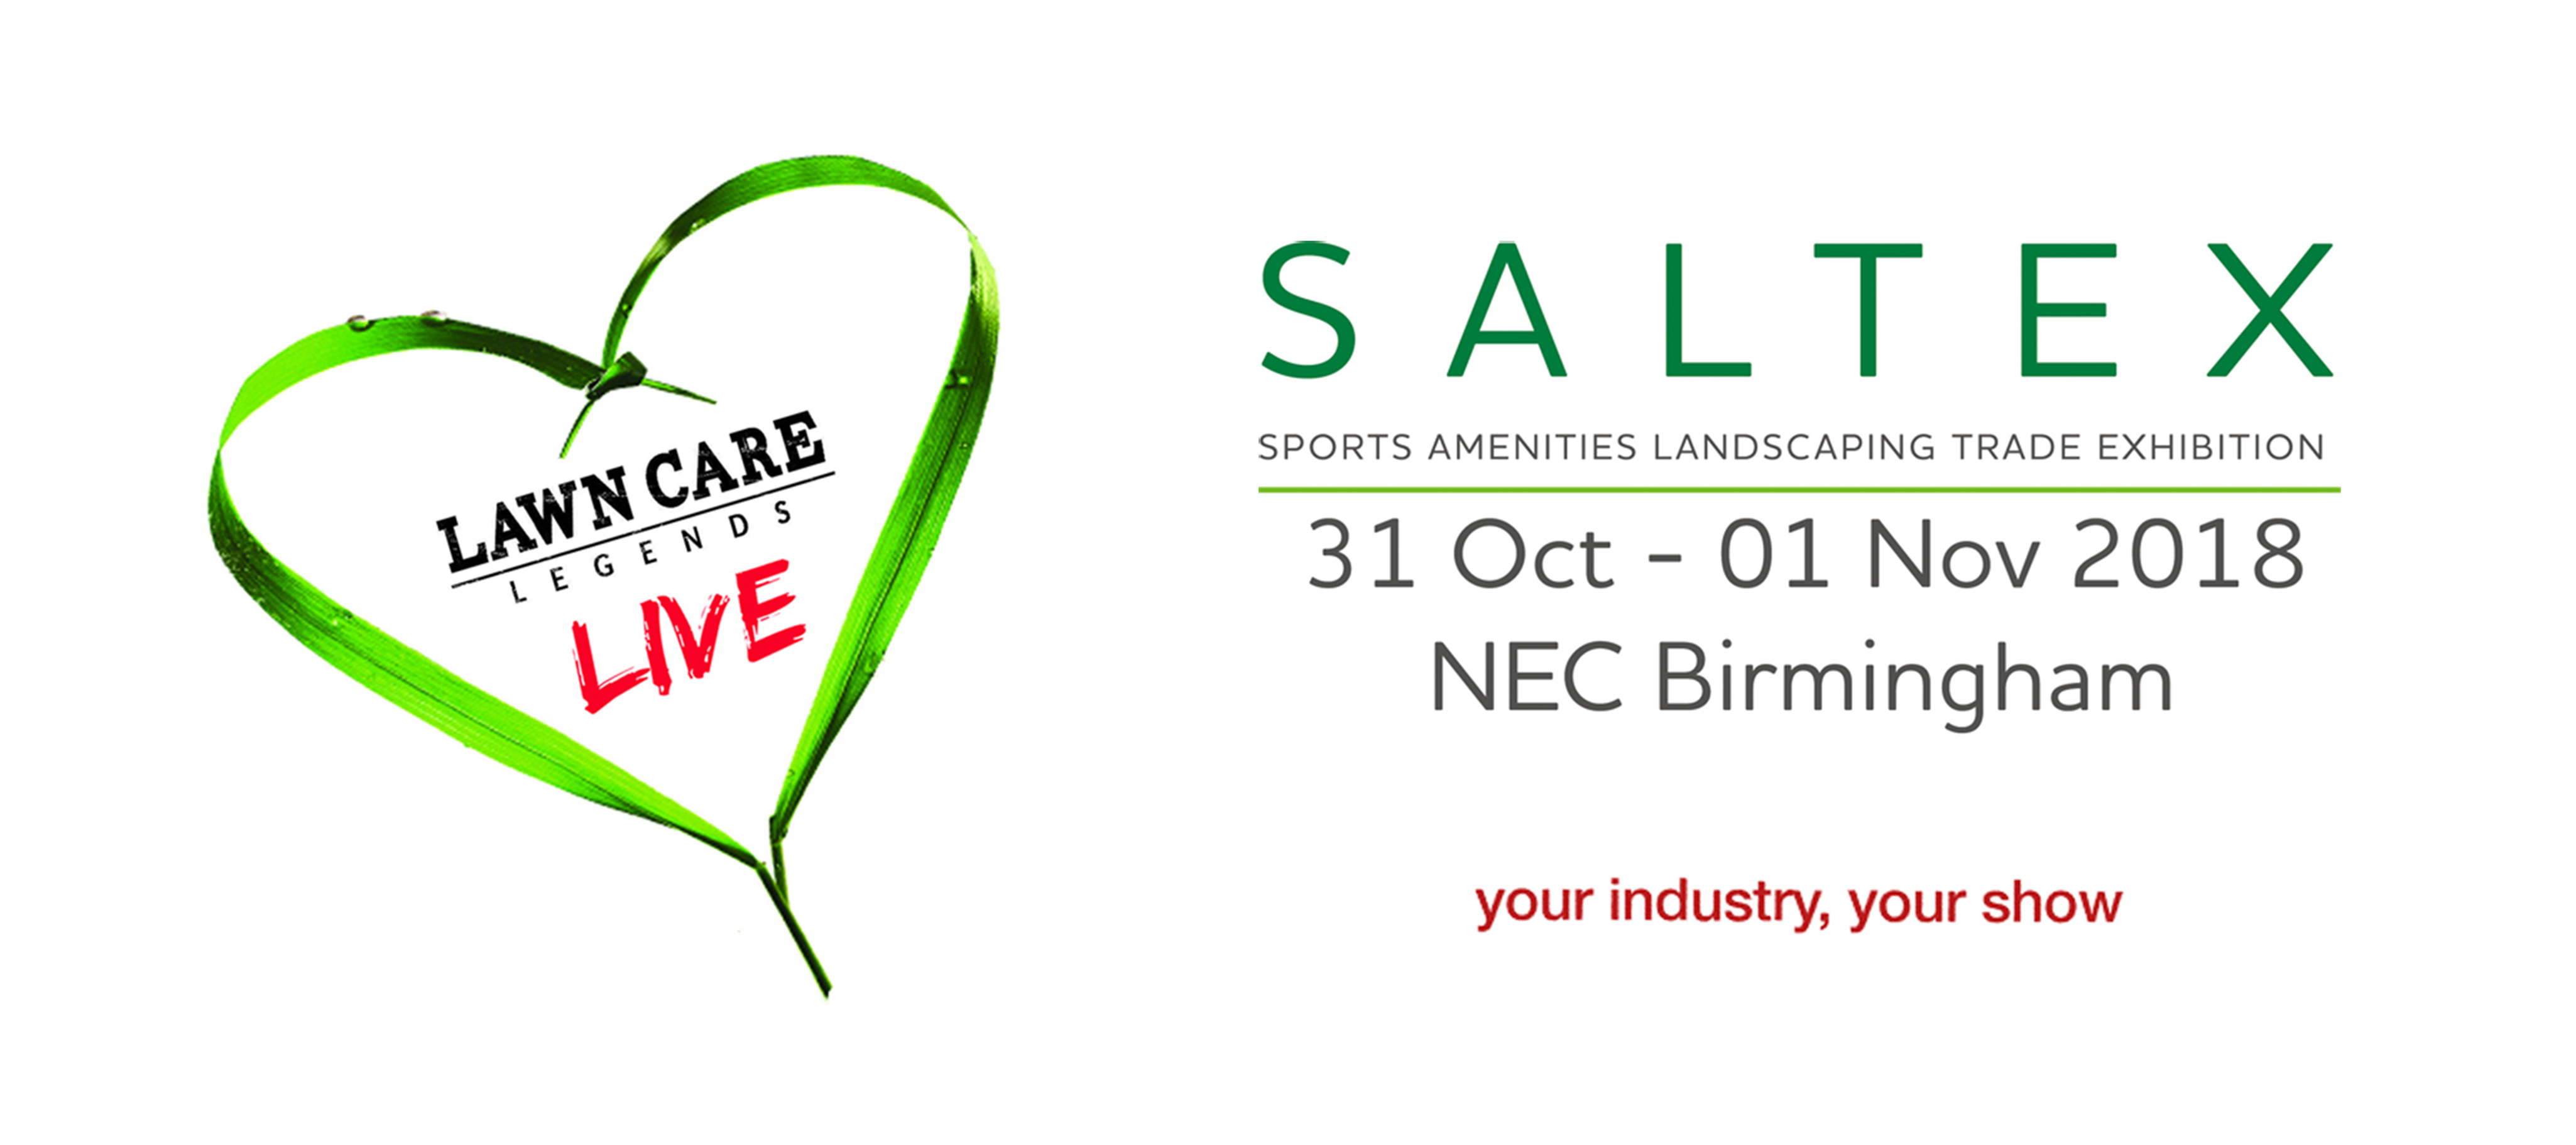 Lawn Care Legends LIVE comes to SALTEX